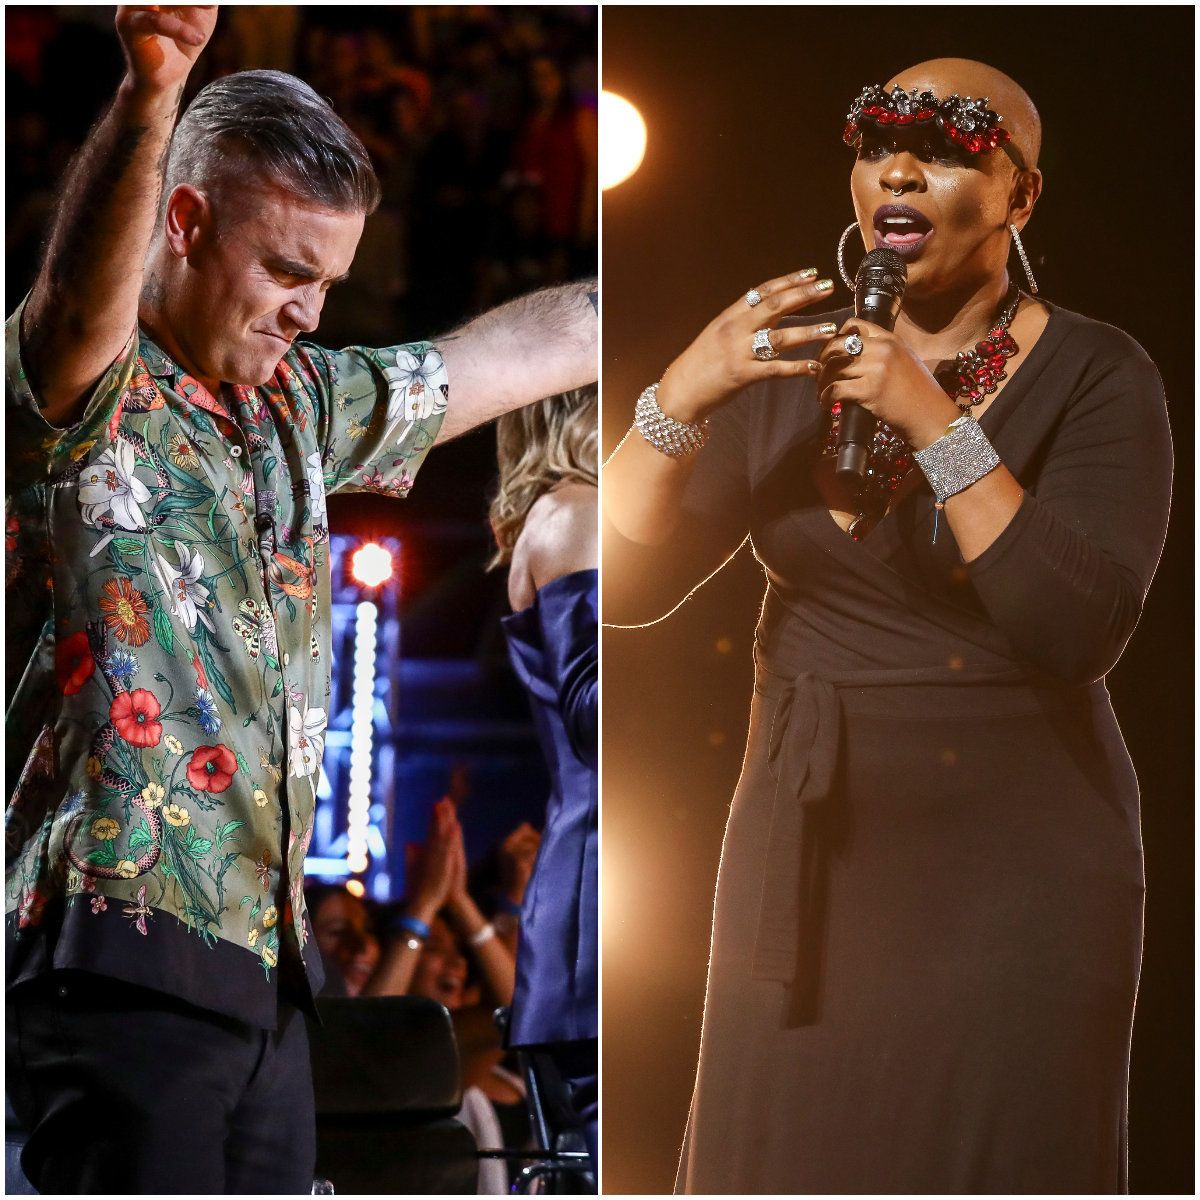 Robbie Williams Has Emotional 'X Factor' Moment As 90s Dance Singer Janice Robinson Auditions